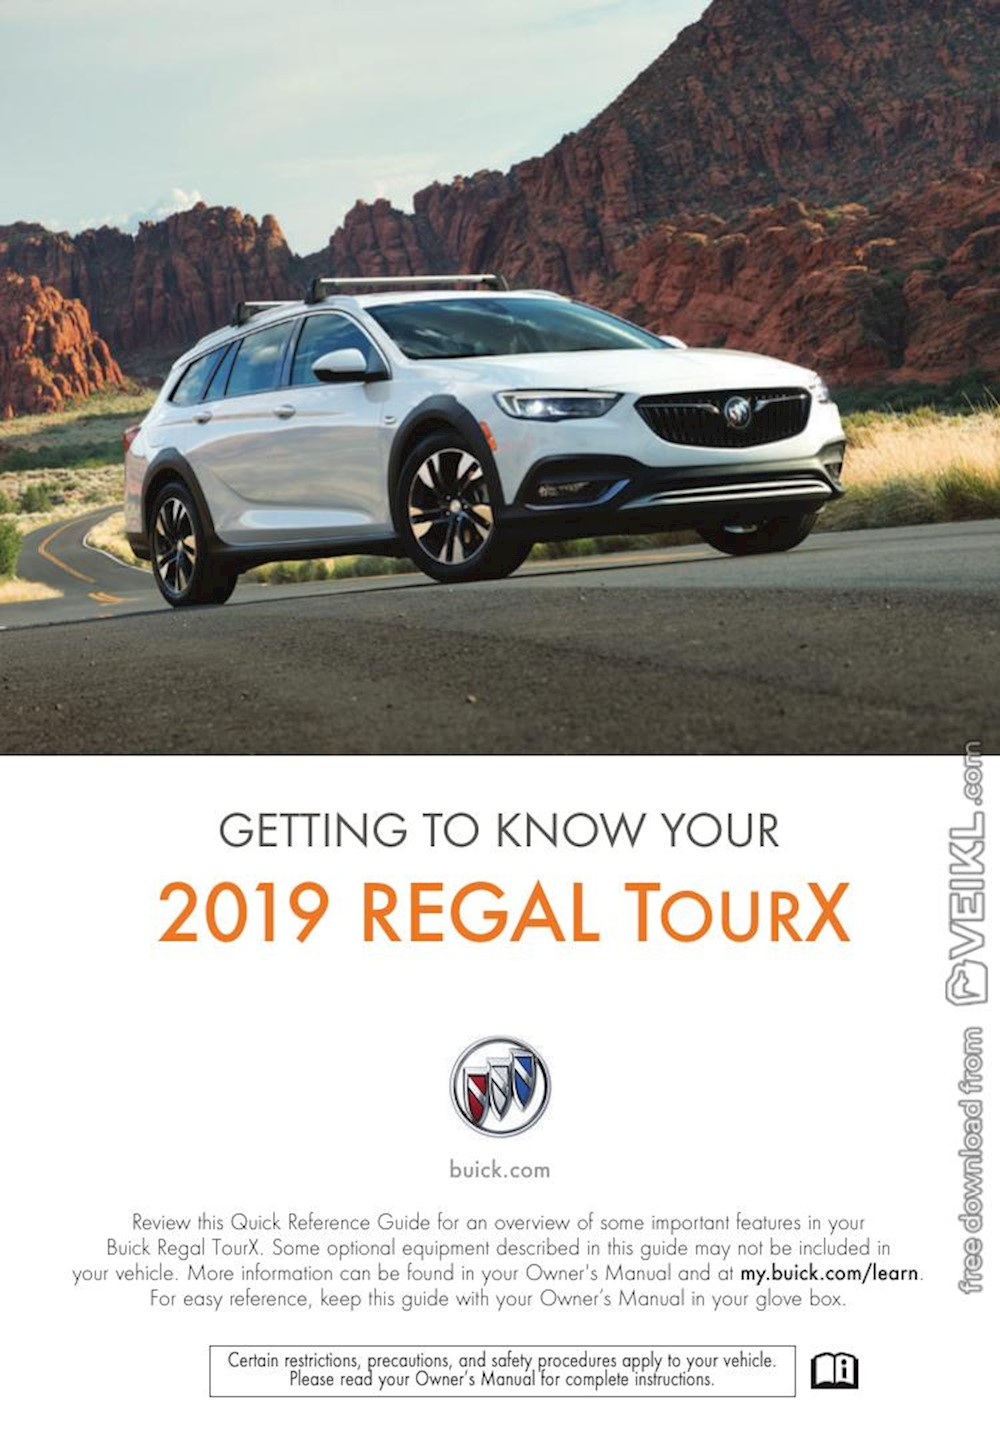 Buick Regal TourX Getting To Know Your 2019 EN